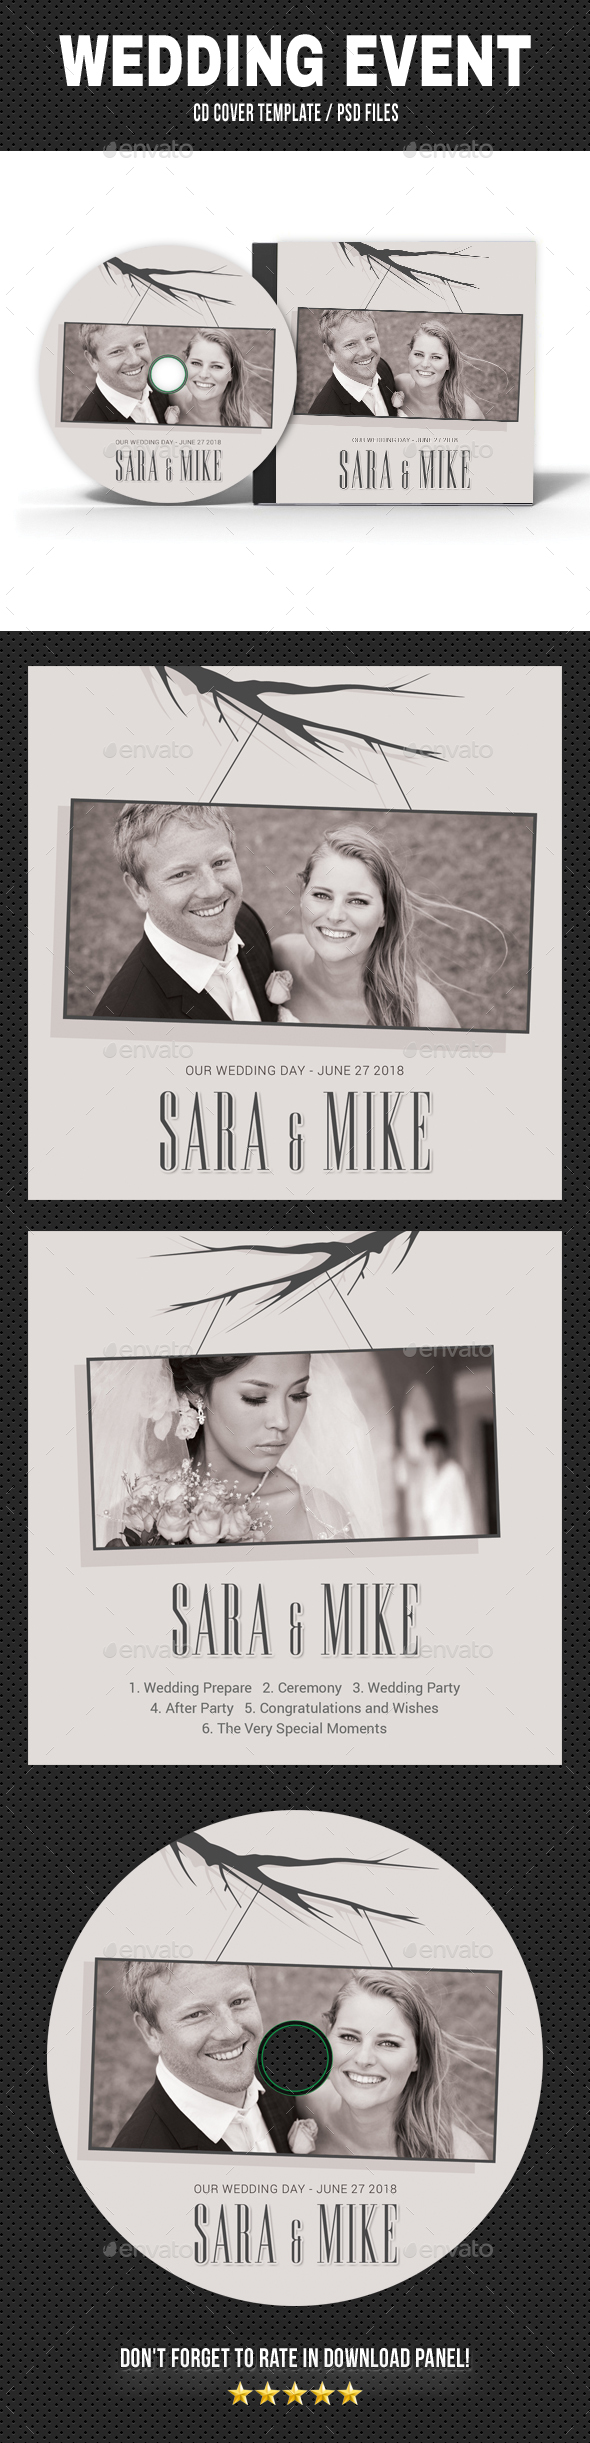 GraphicRiver Wedding Event CD Cover v20 20364524